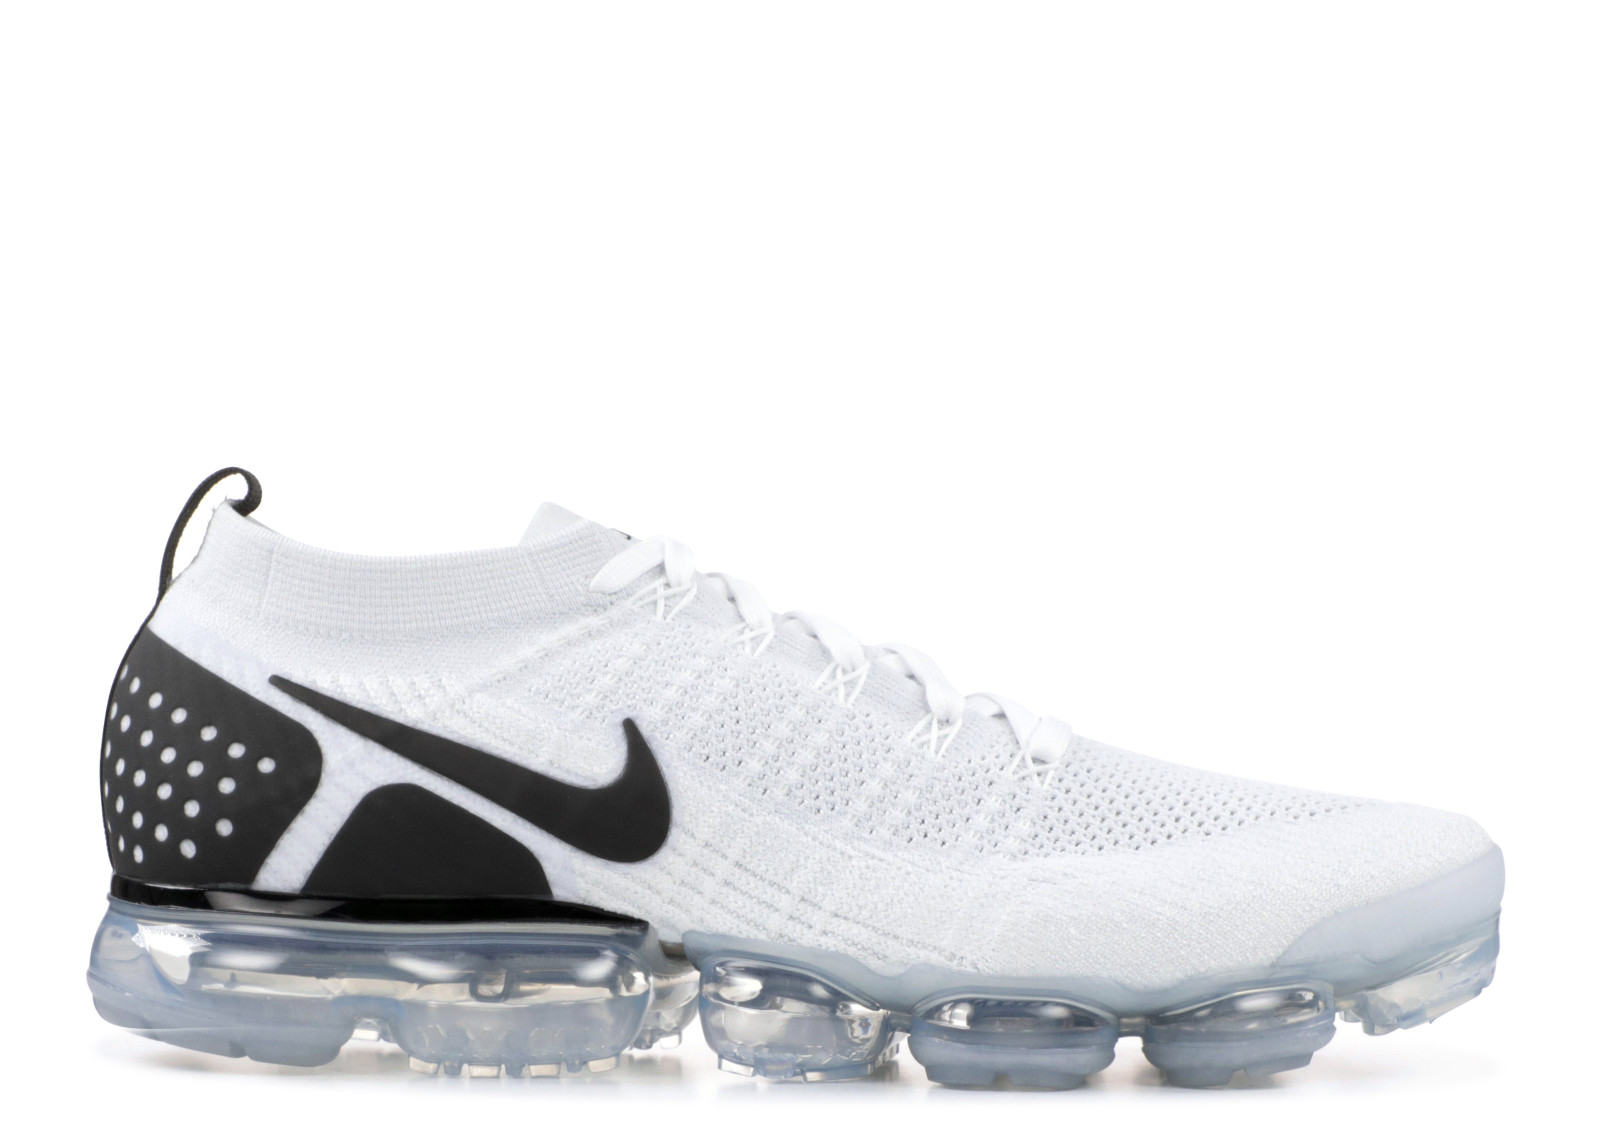 new arrivals hot product cheaper Nike - Men - Nike Air Vapormax Flyknit 2 'Reverse Orca' - 942842-103 - Size  11